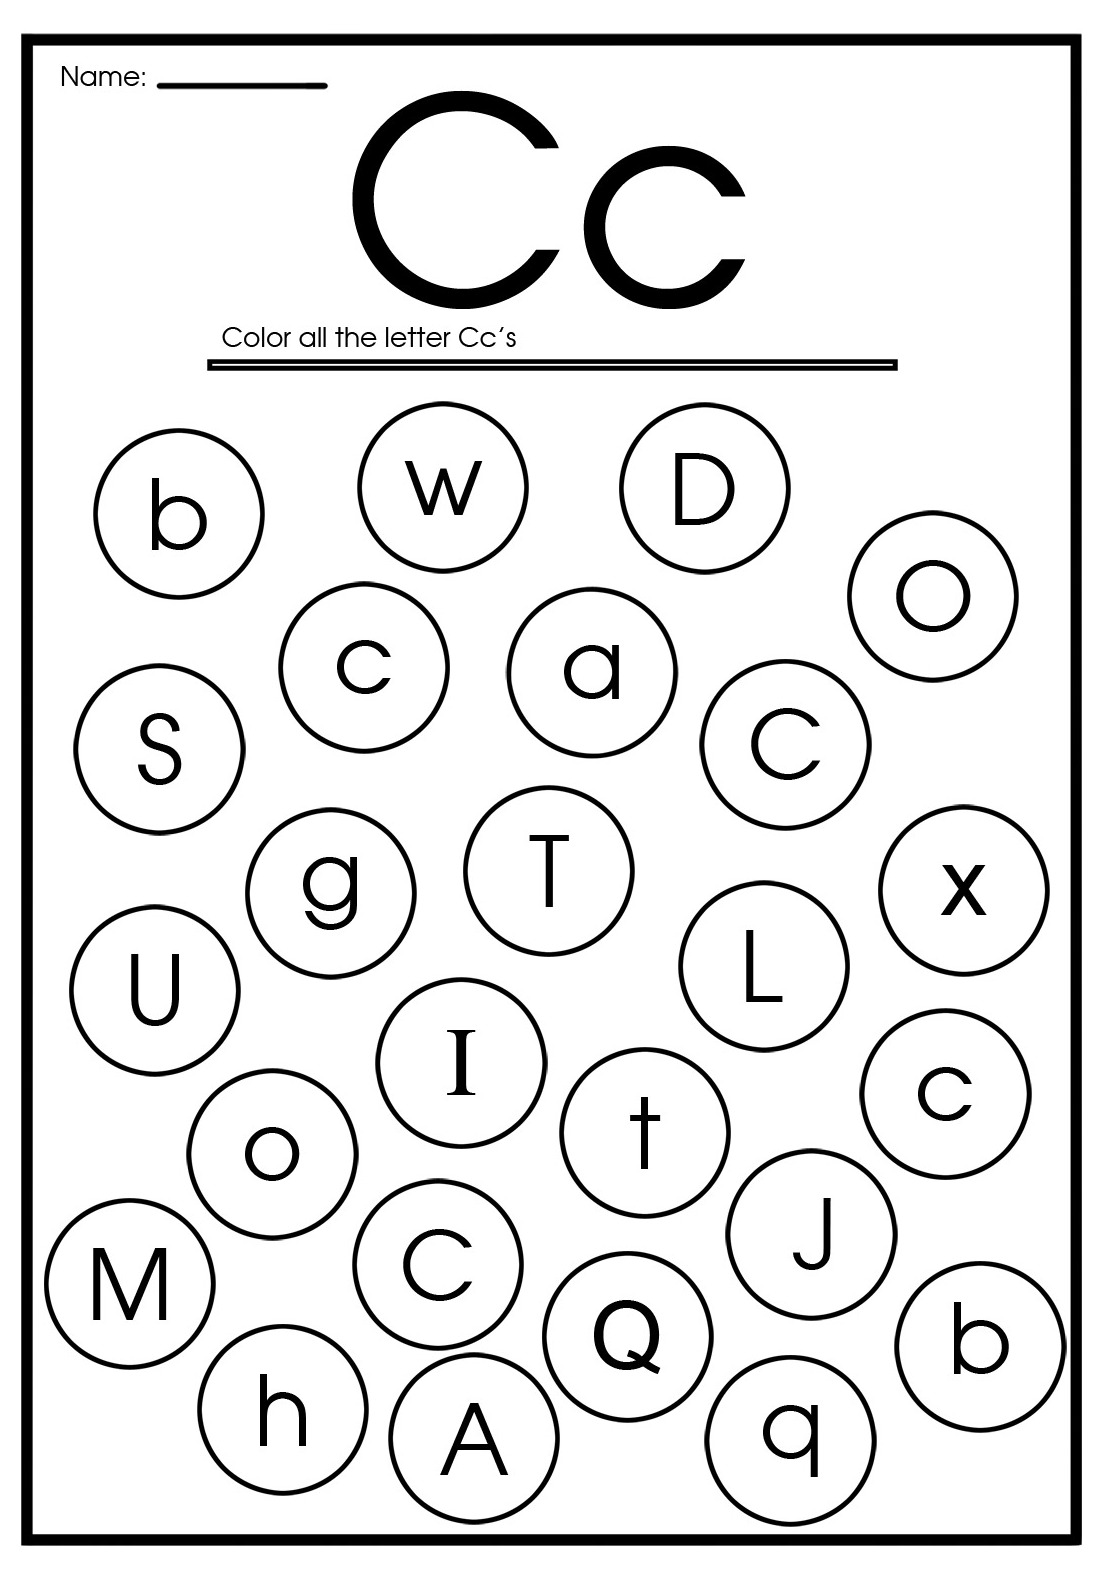 Printable Letter C Worksheets For Kindergarten Preschoolers